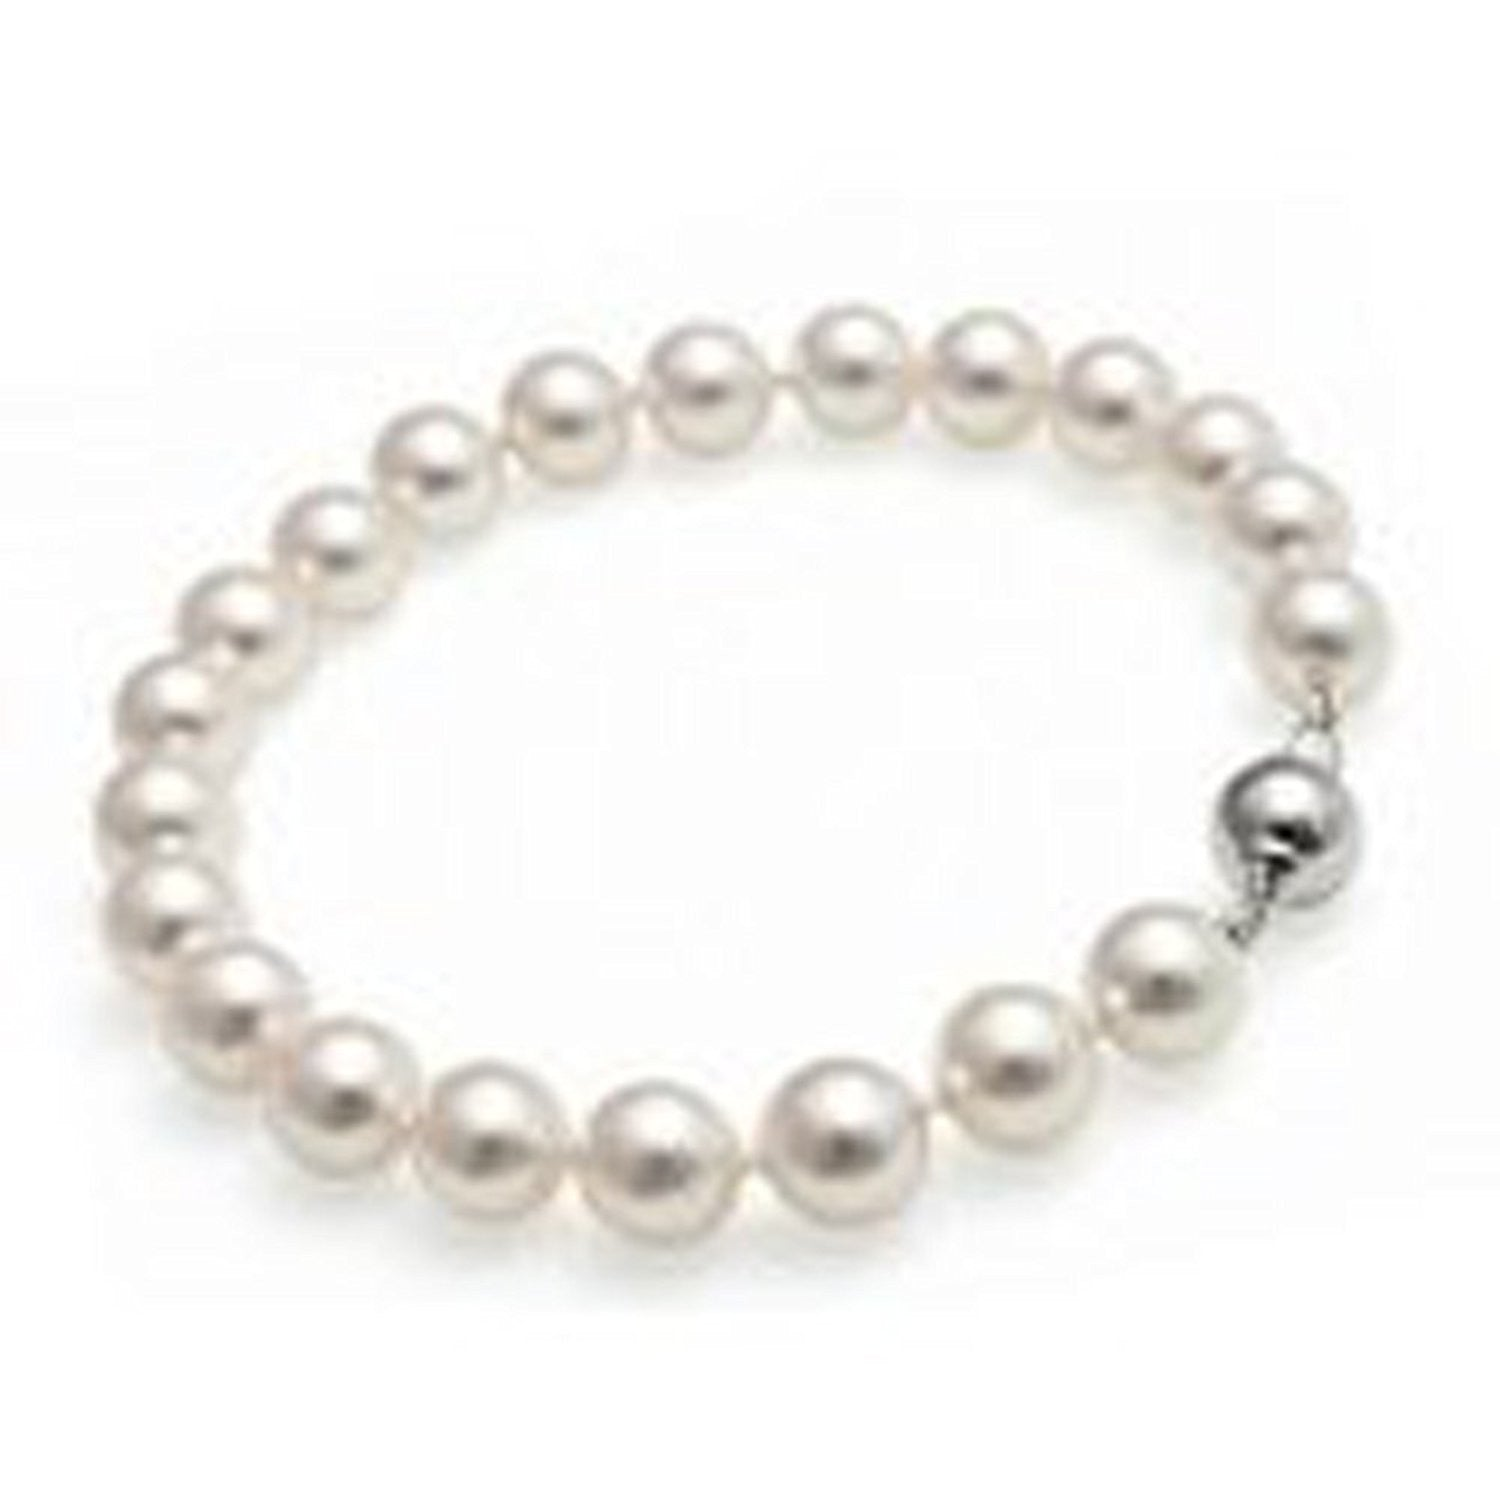 in bracelet classic pearls product made with freshwater pearl uk cultured